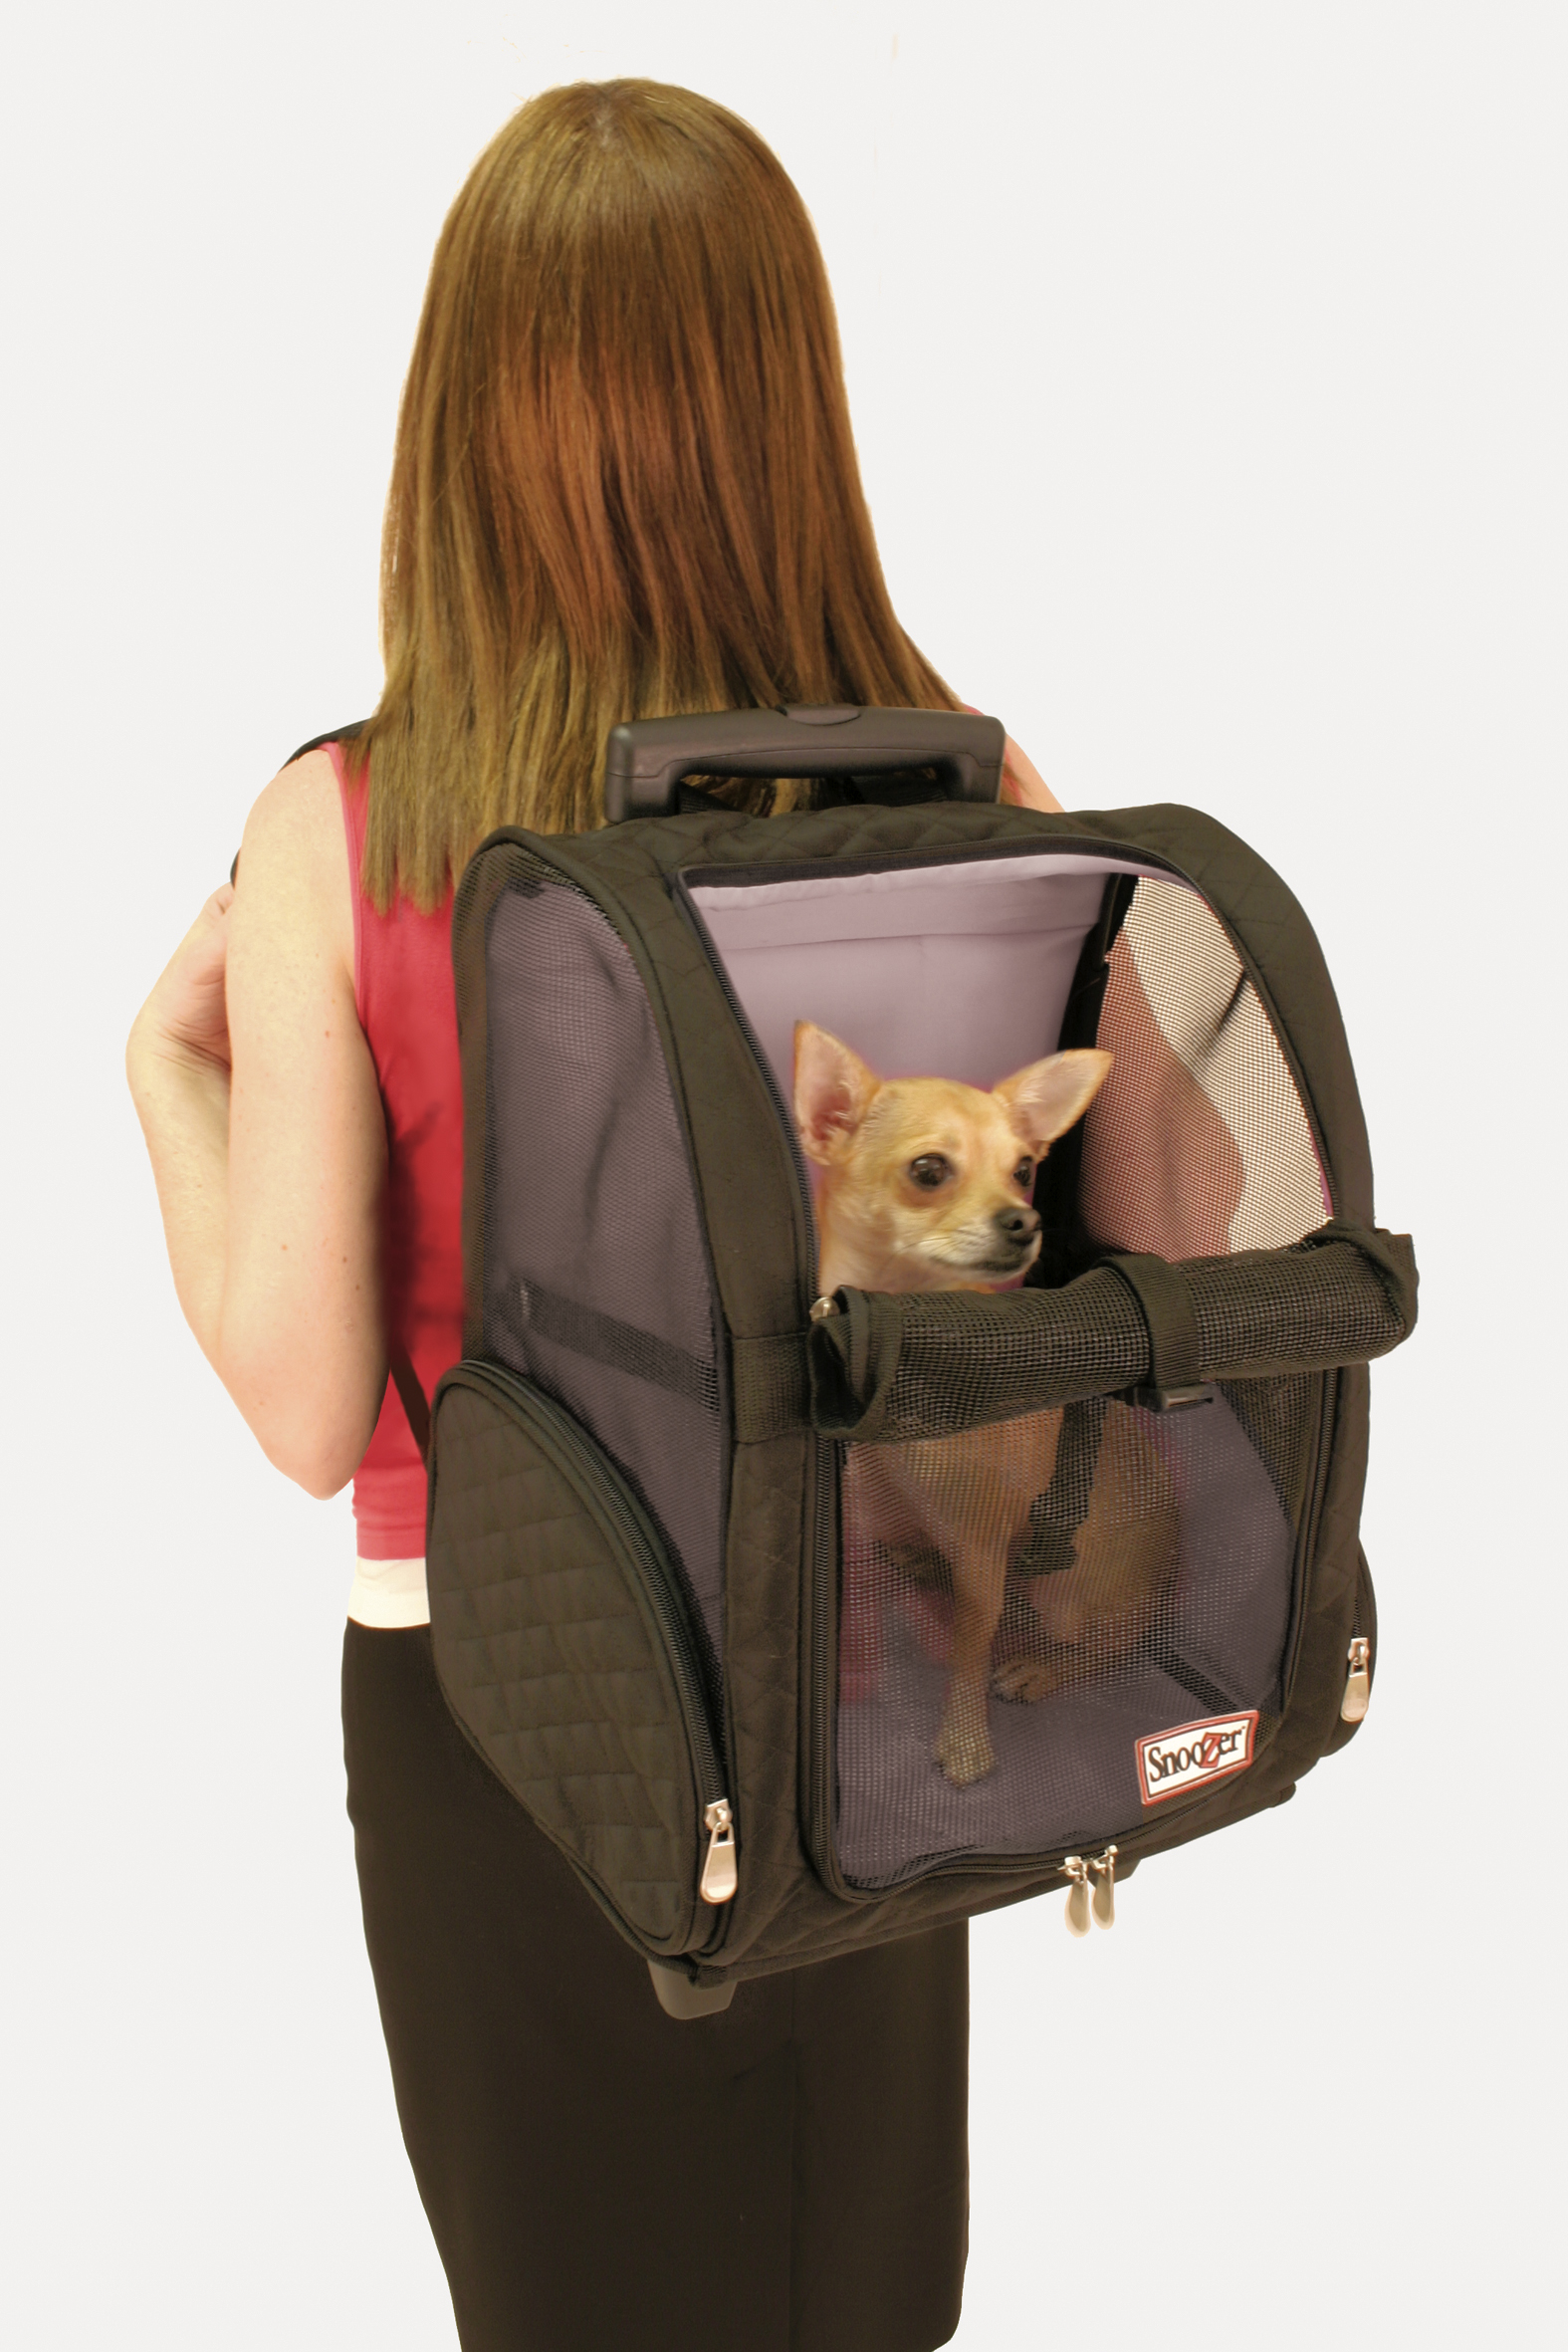 Roll Around Travel Pet Carrier - Med Black/grey Thumbnail Image 1